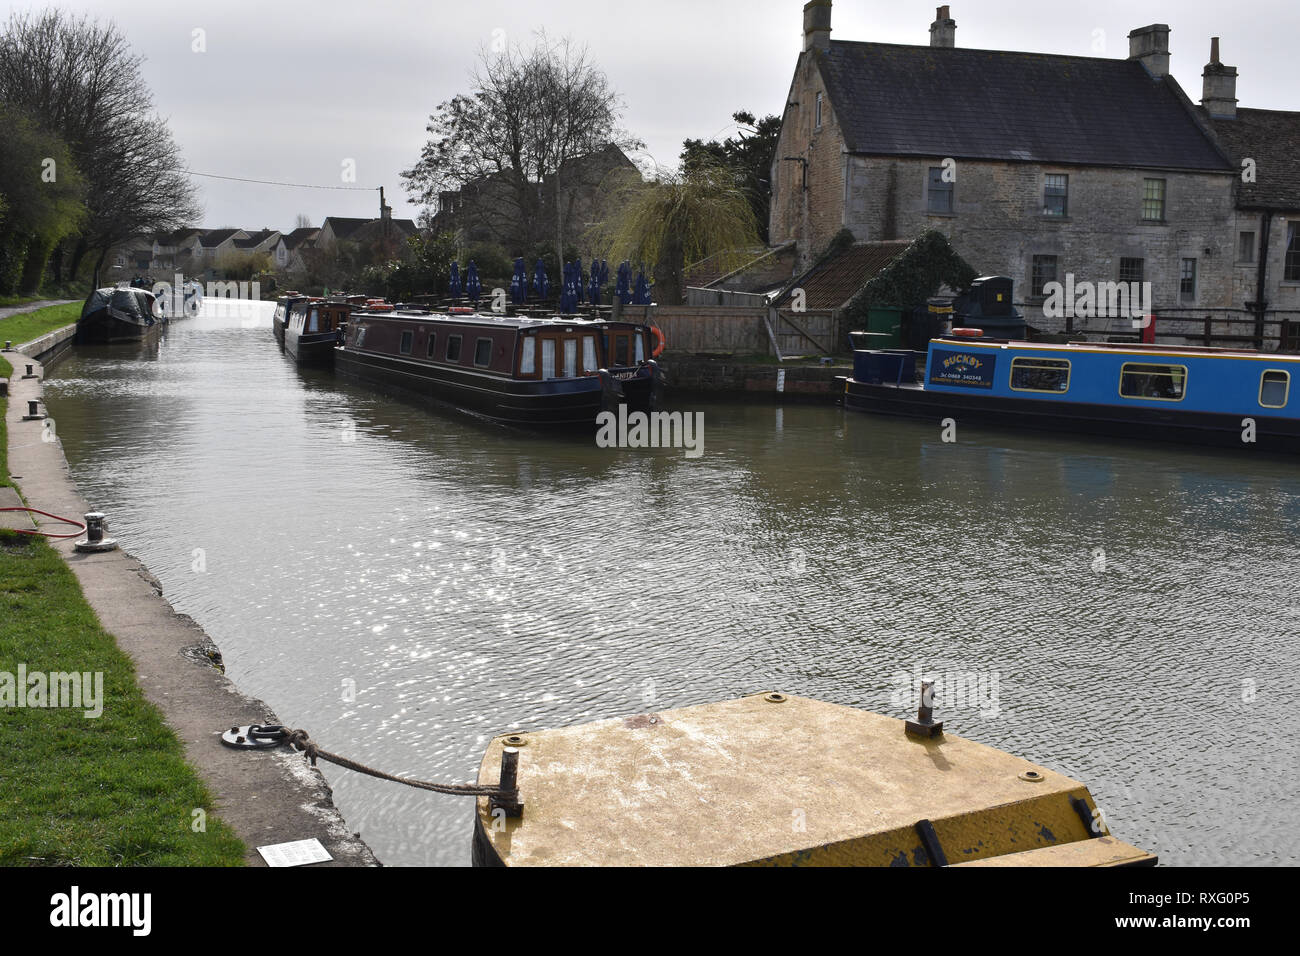 The Kennet and Avon canal, Bradford on Avon Stock Photo